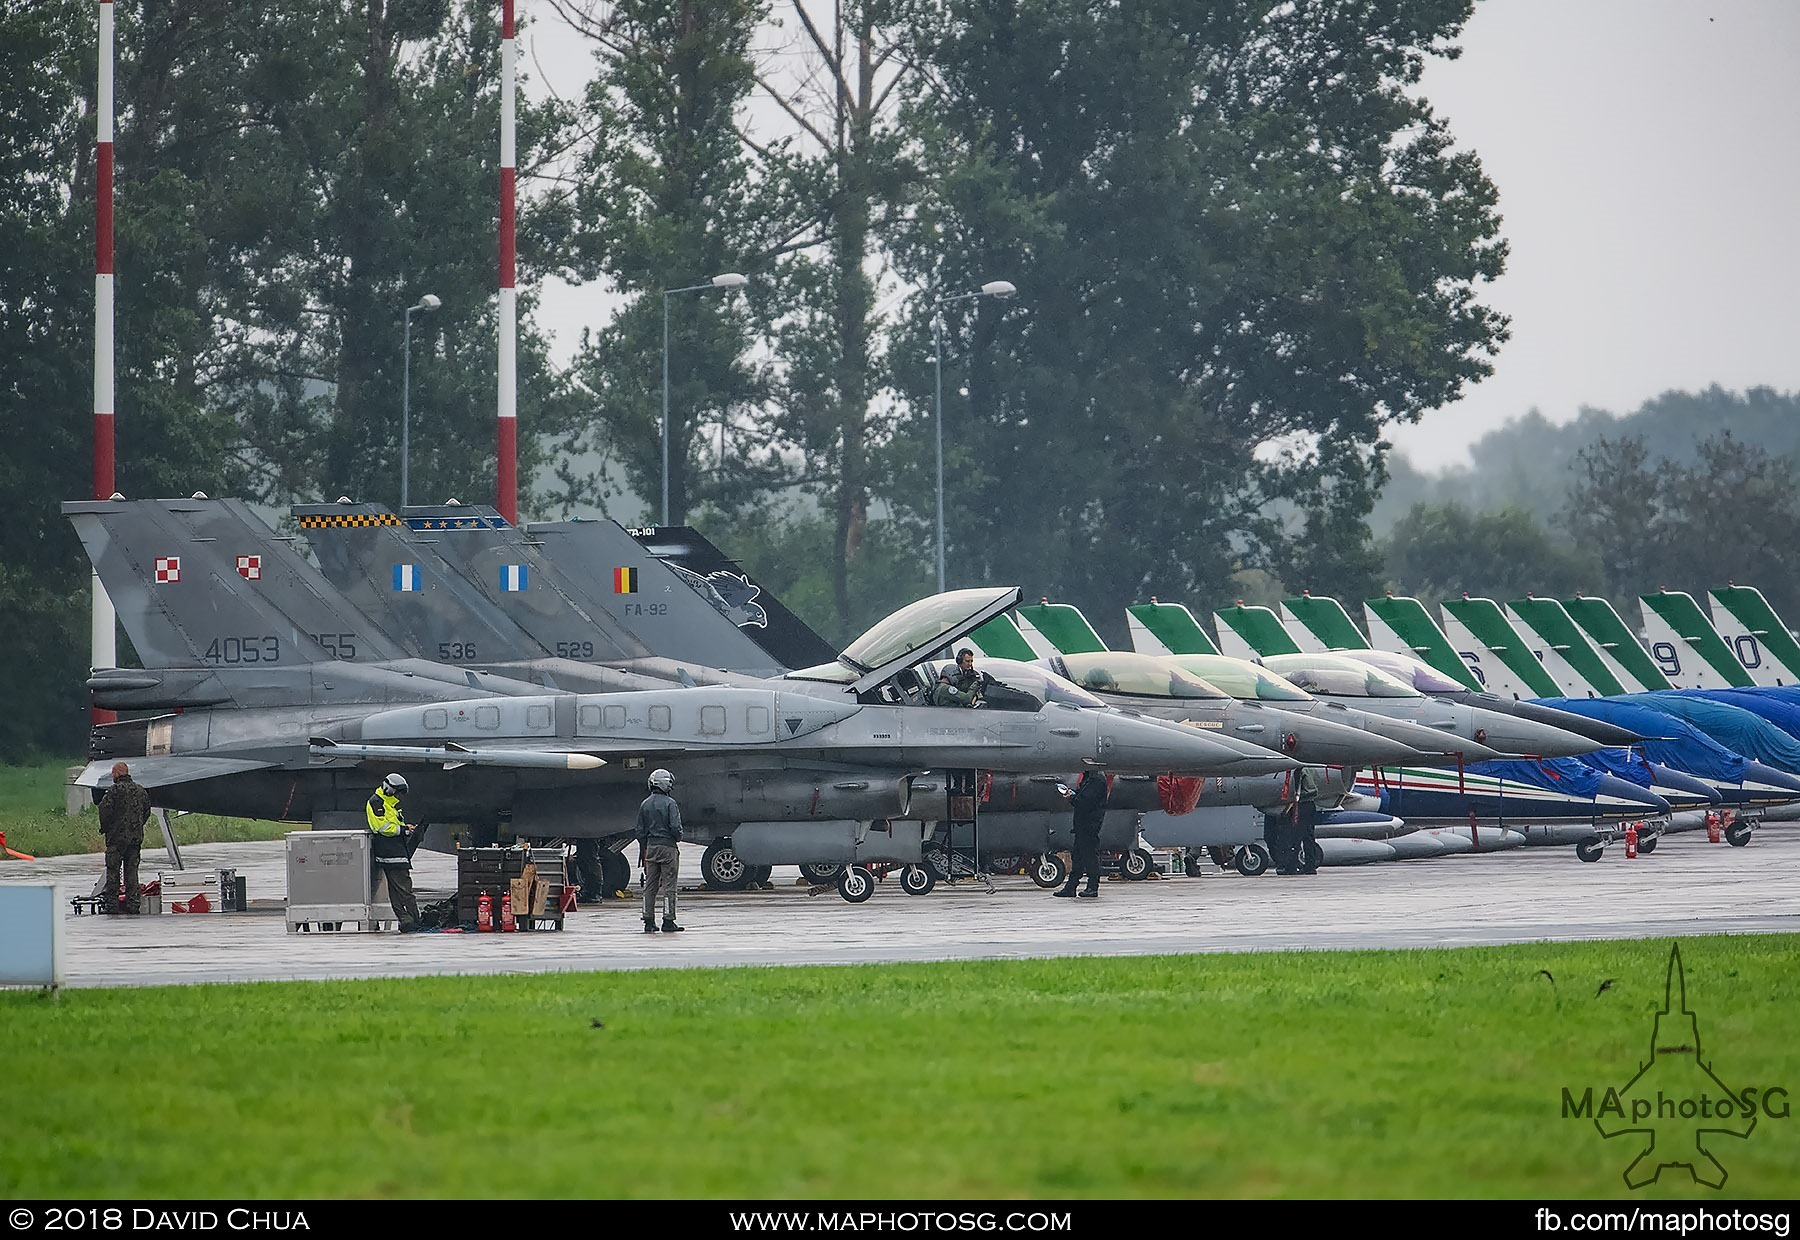 60. Flight line of consisting of 6 F-16s from Polish, Hellenic and Belgium Air Forces with the MB-339s of the Frecce Tricolori in the background